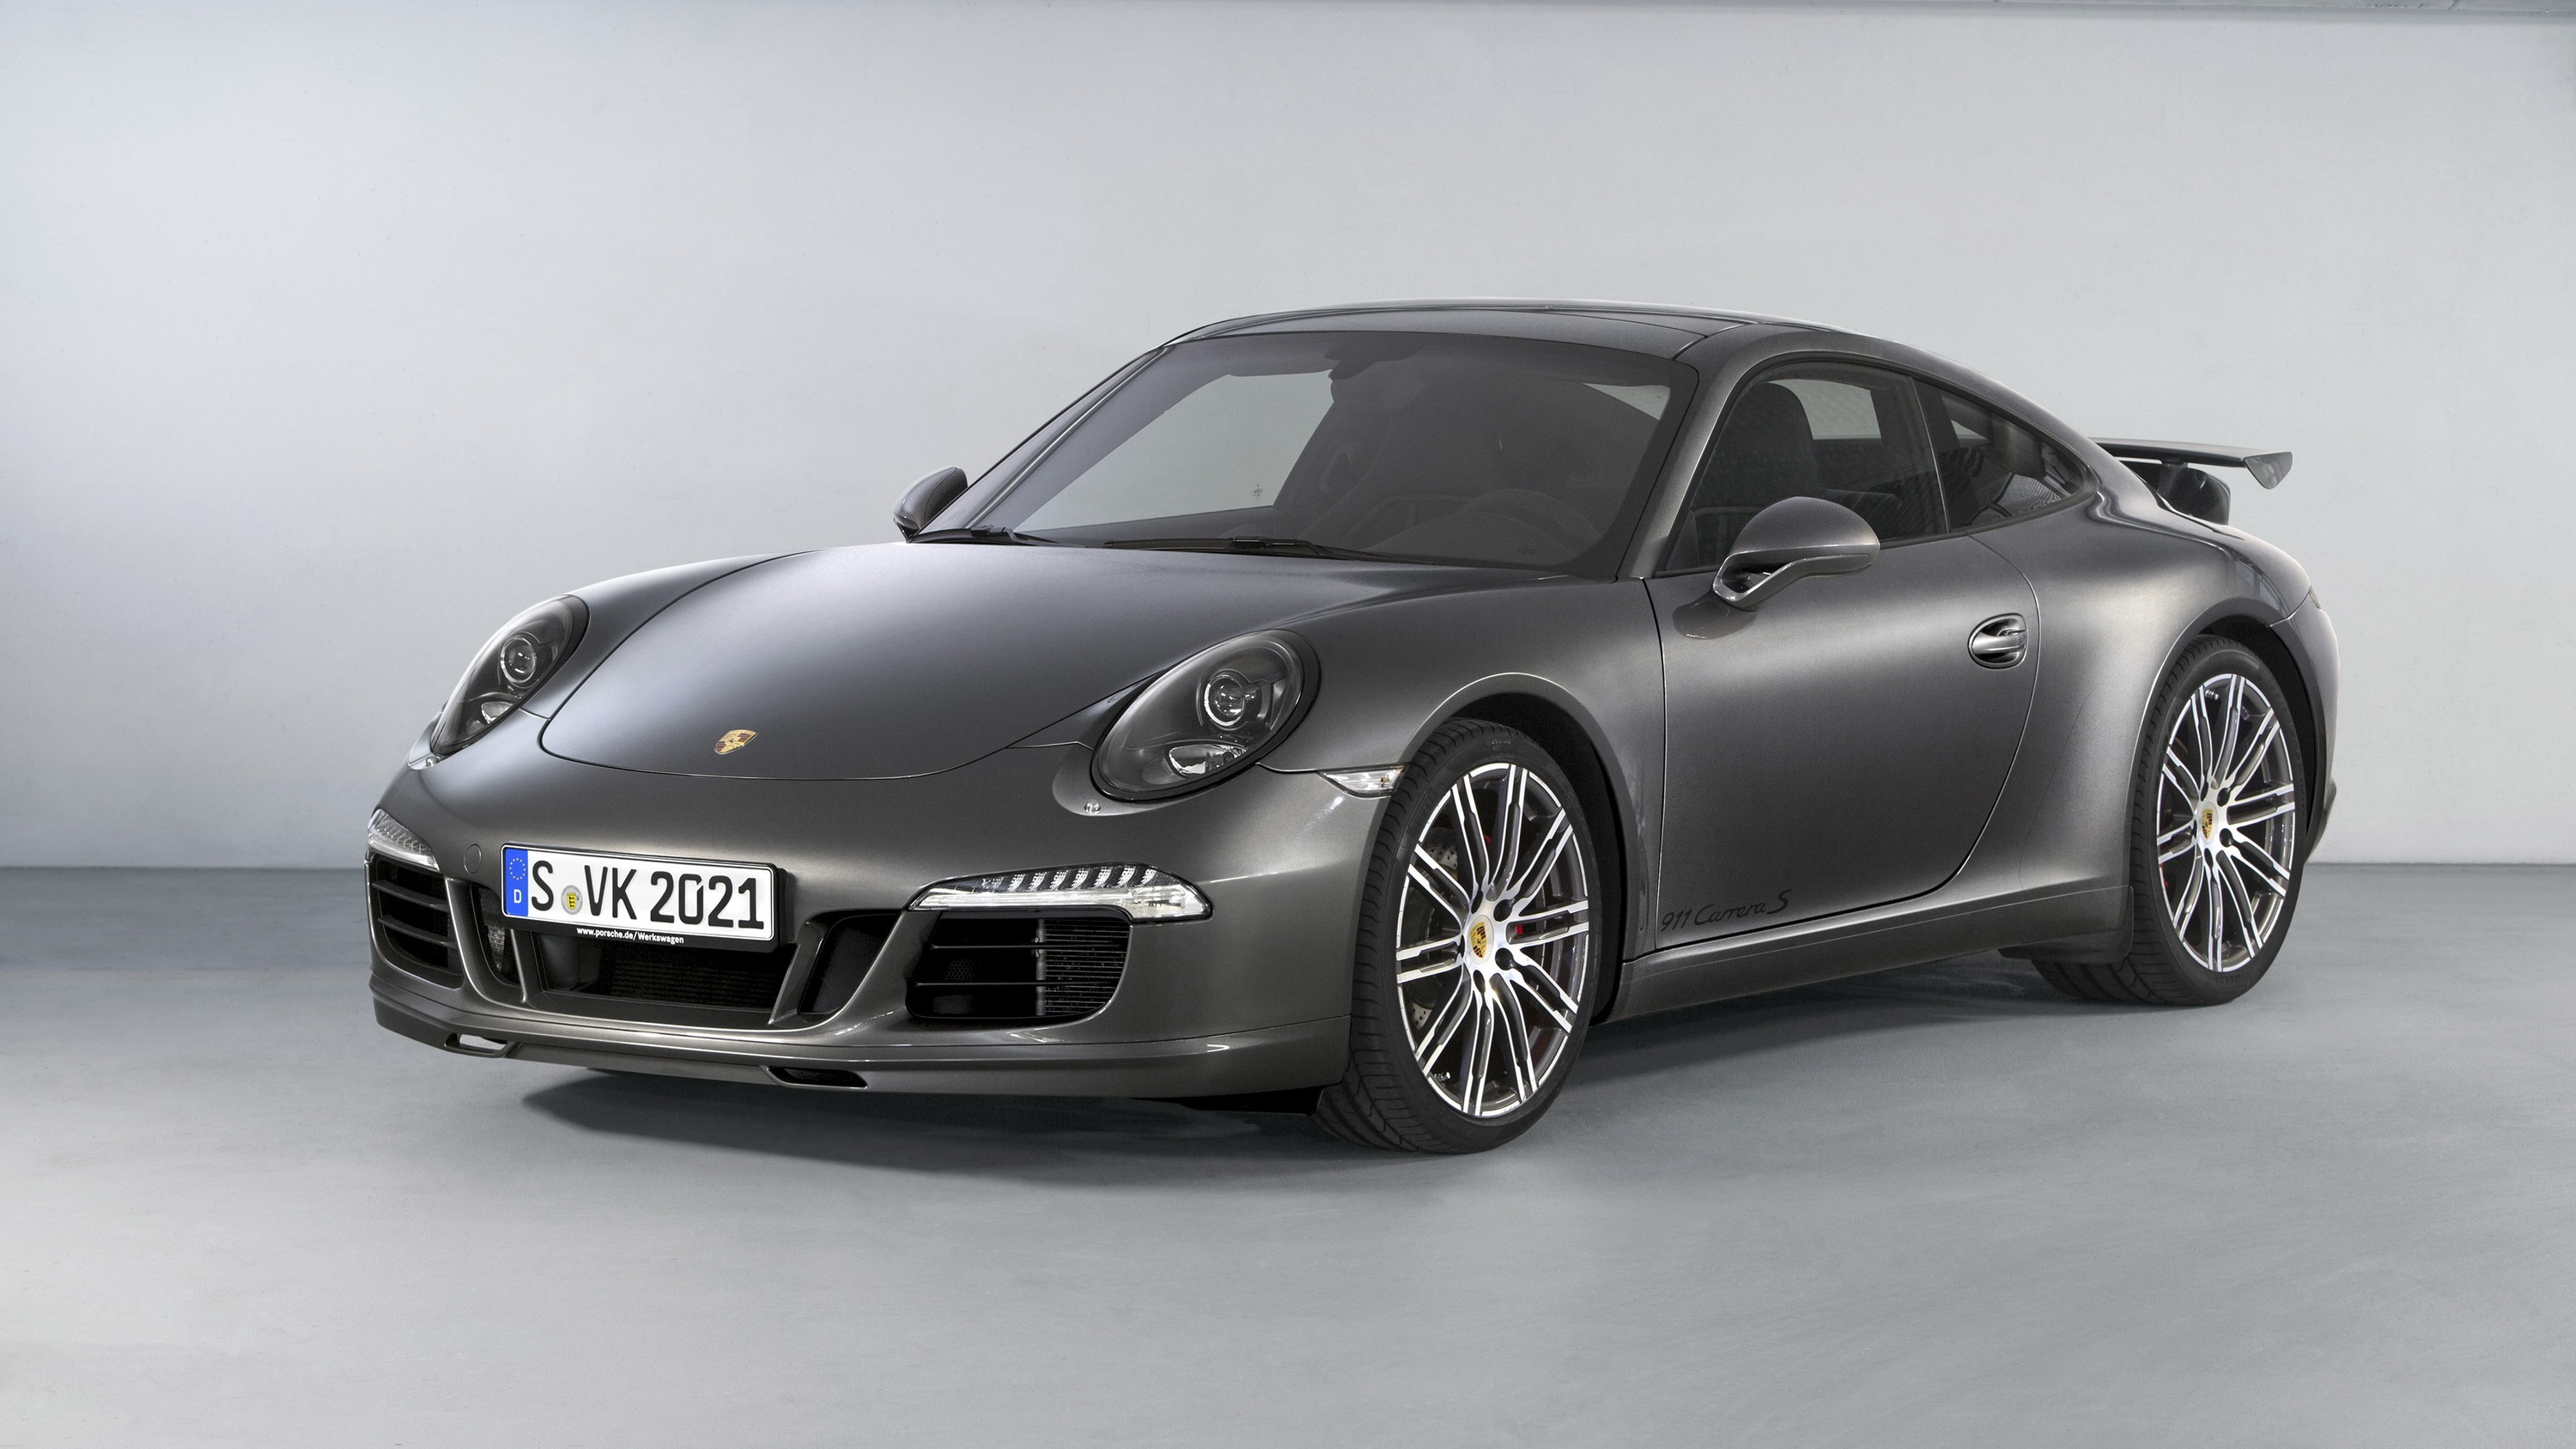 2011 porsche 911 carrera s by porsche tequipment review gallery